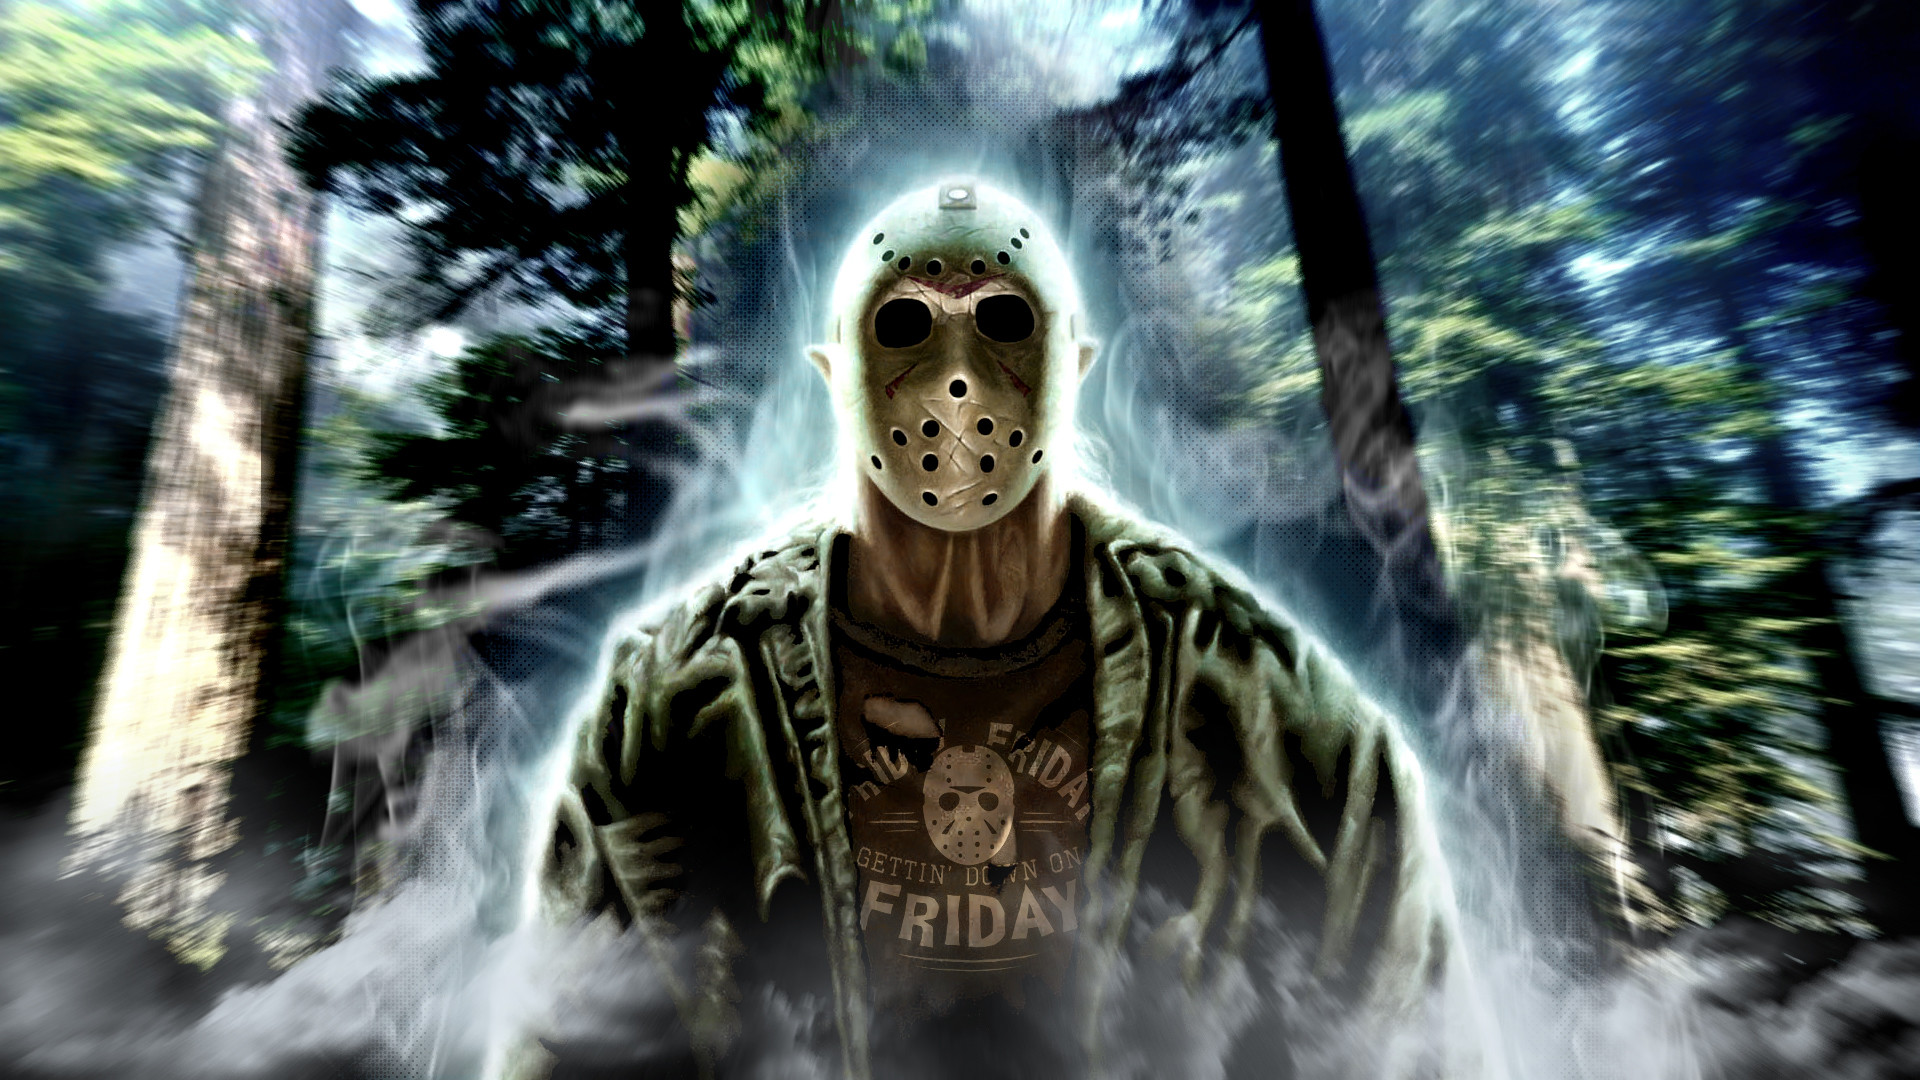 Res: 1920x1080, ... Friday the 13th wallpaper. by Royartandstuff